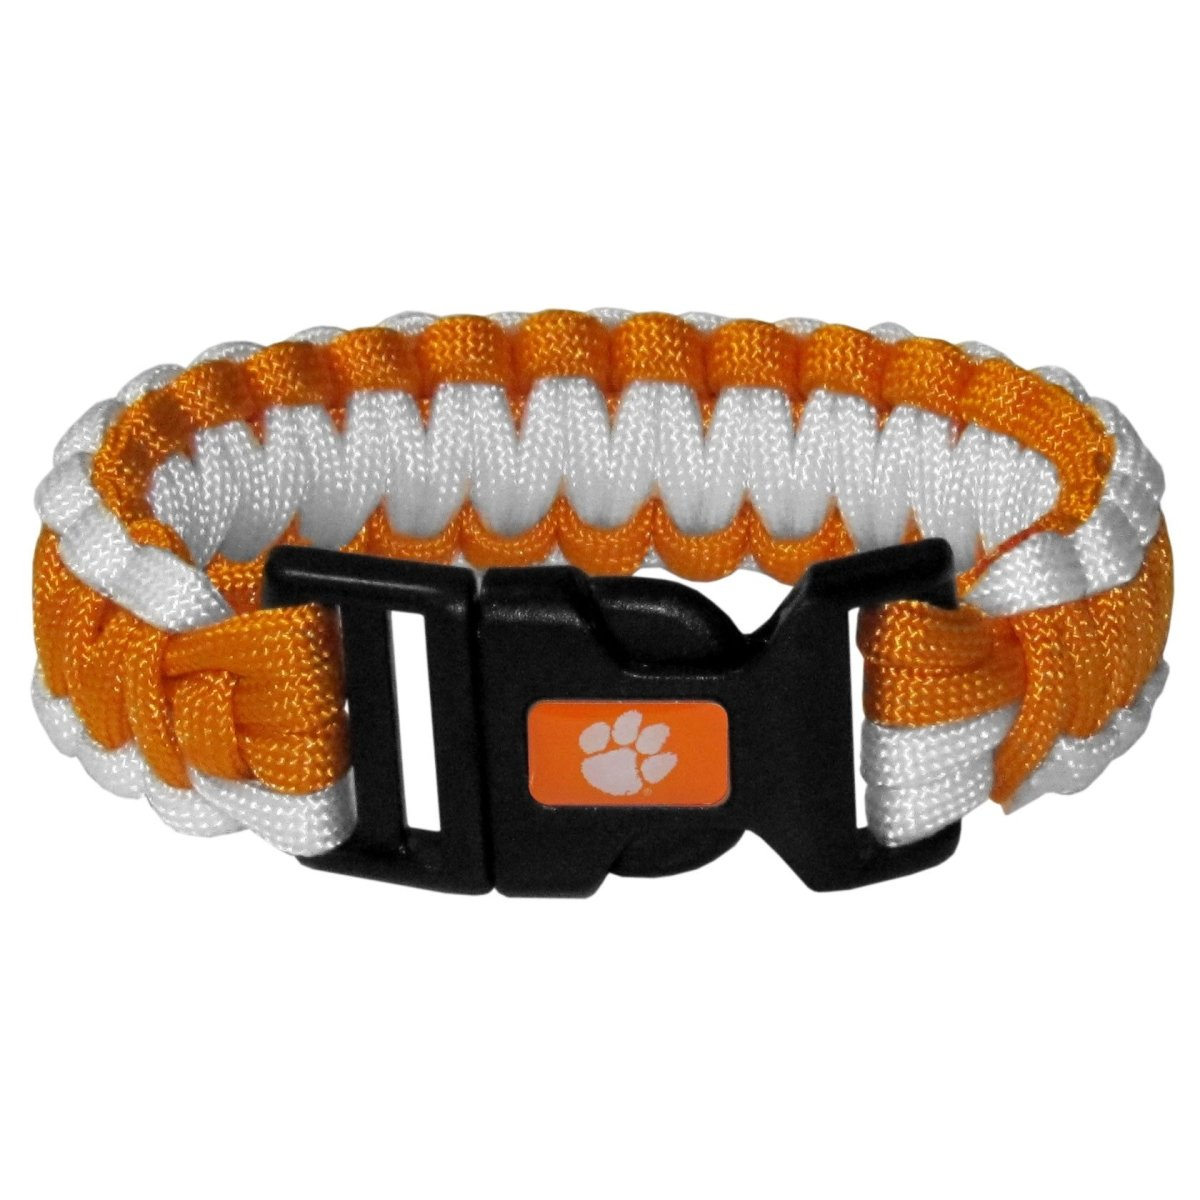 Siskiyou Clemson Tigers Survivor Bracelet - Mr. Knickerbocker